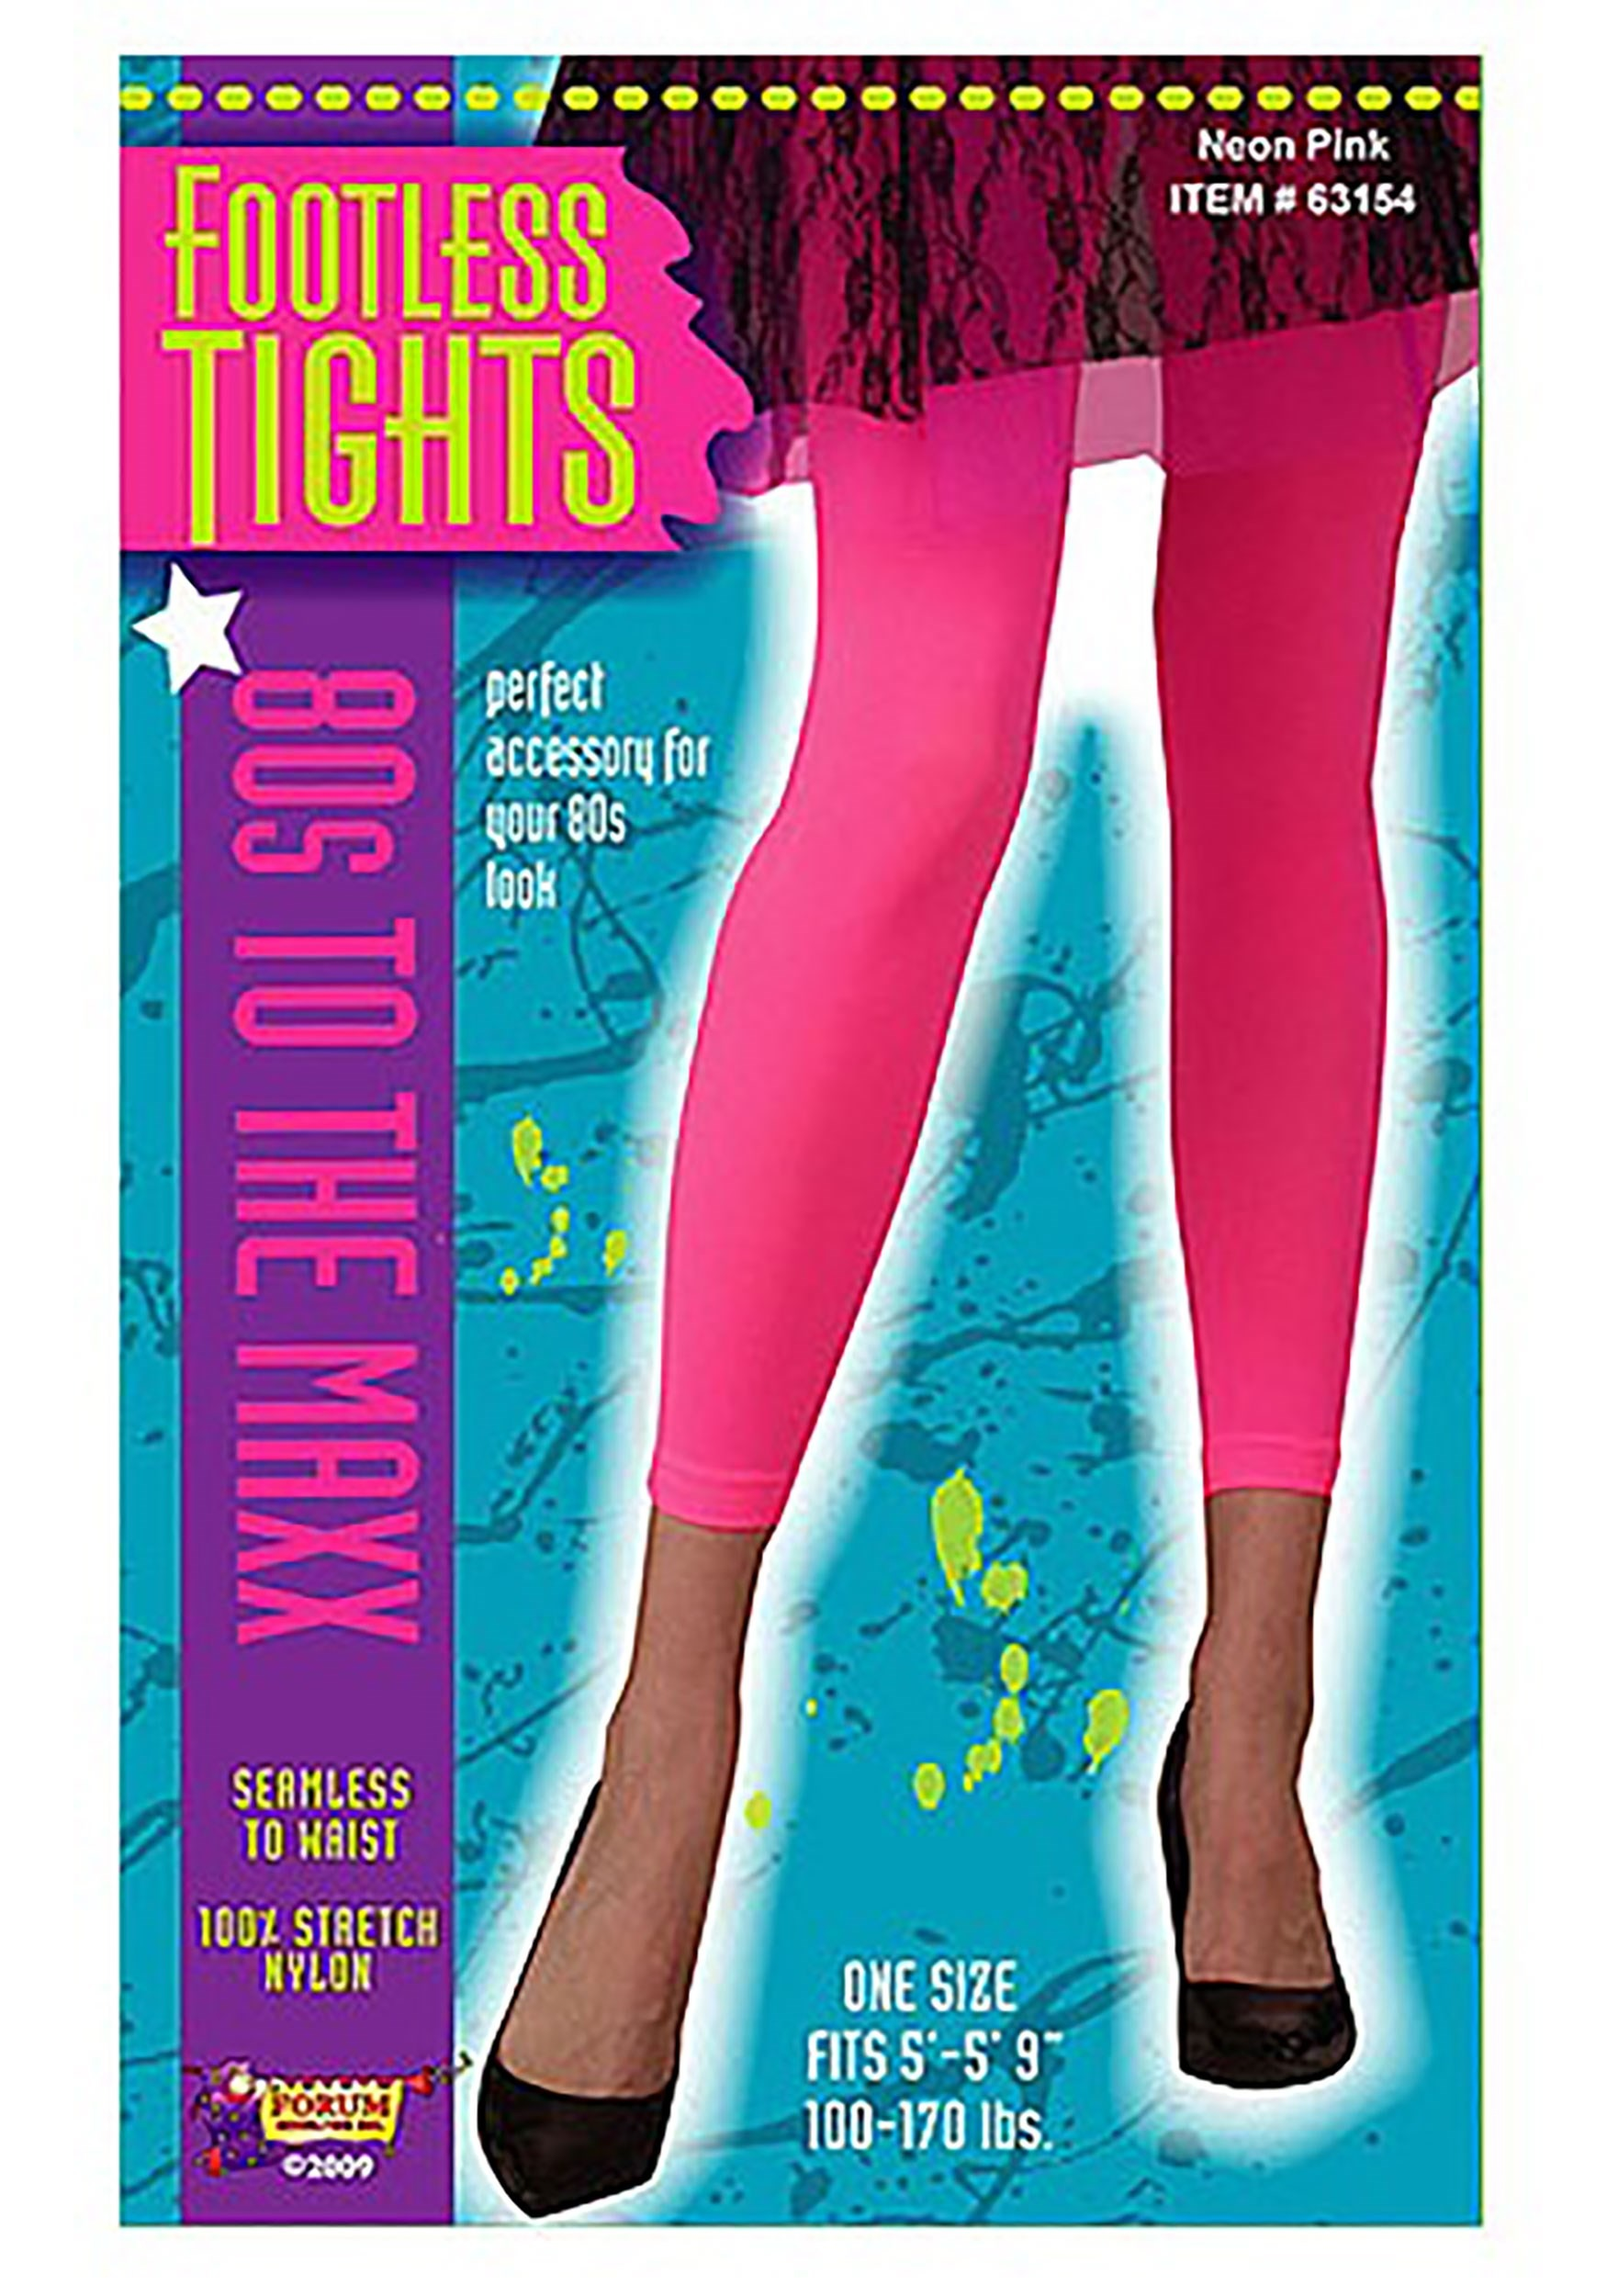 Neon Pink Footless Tights